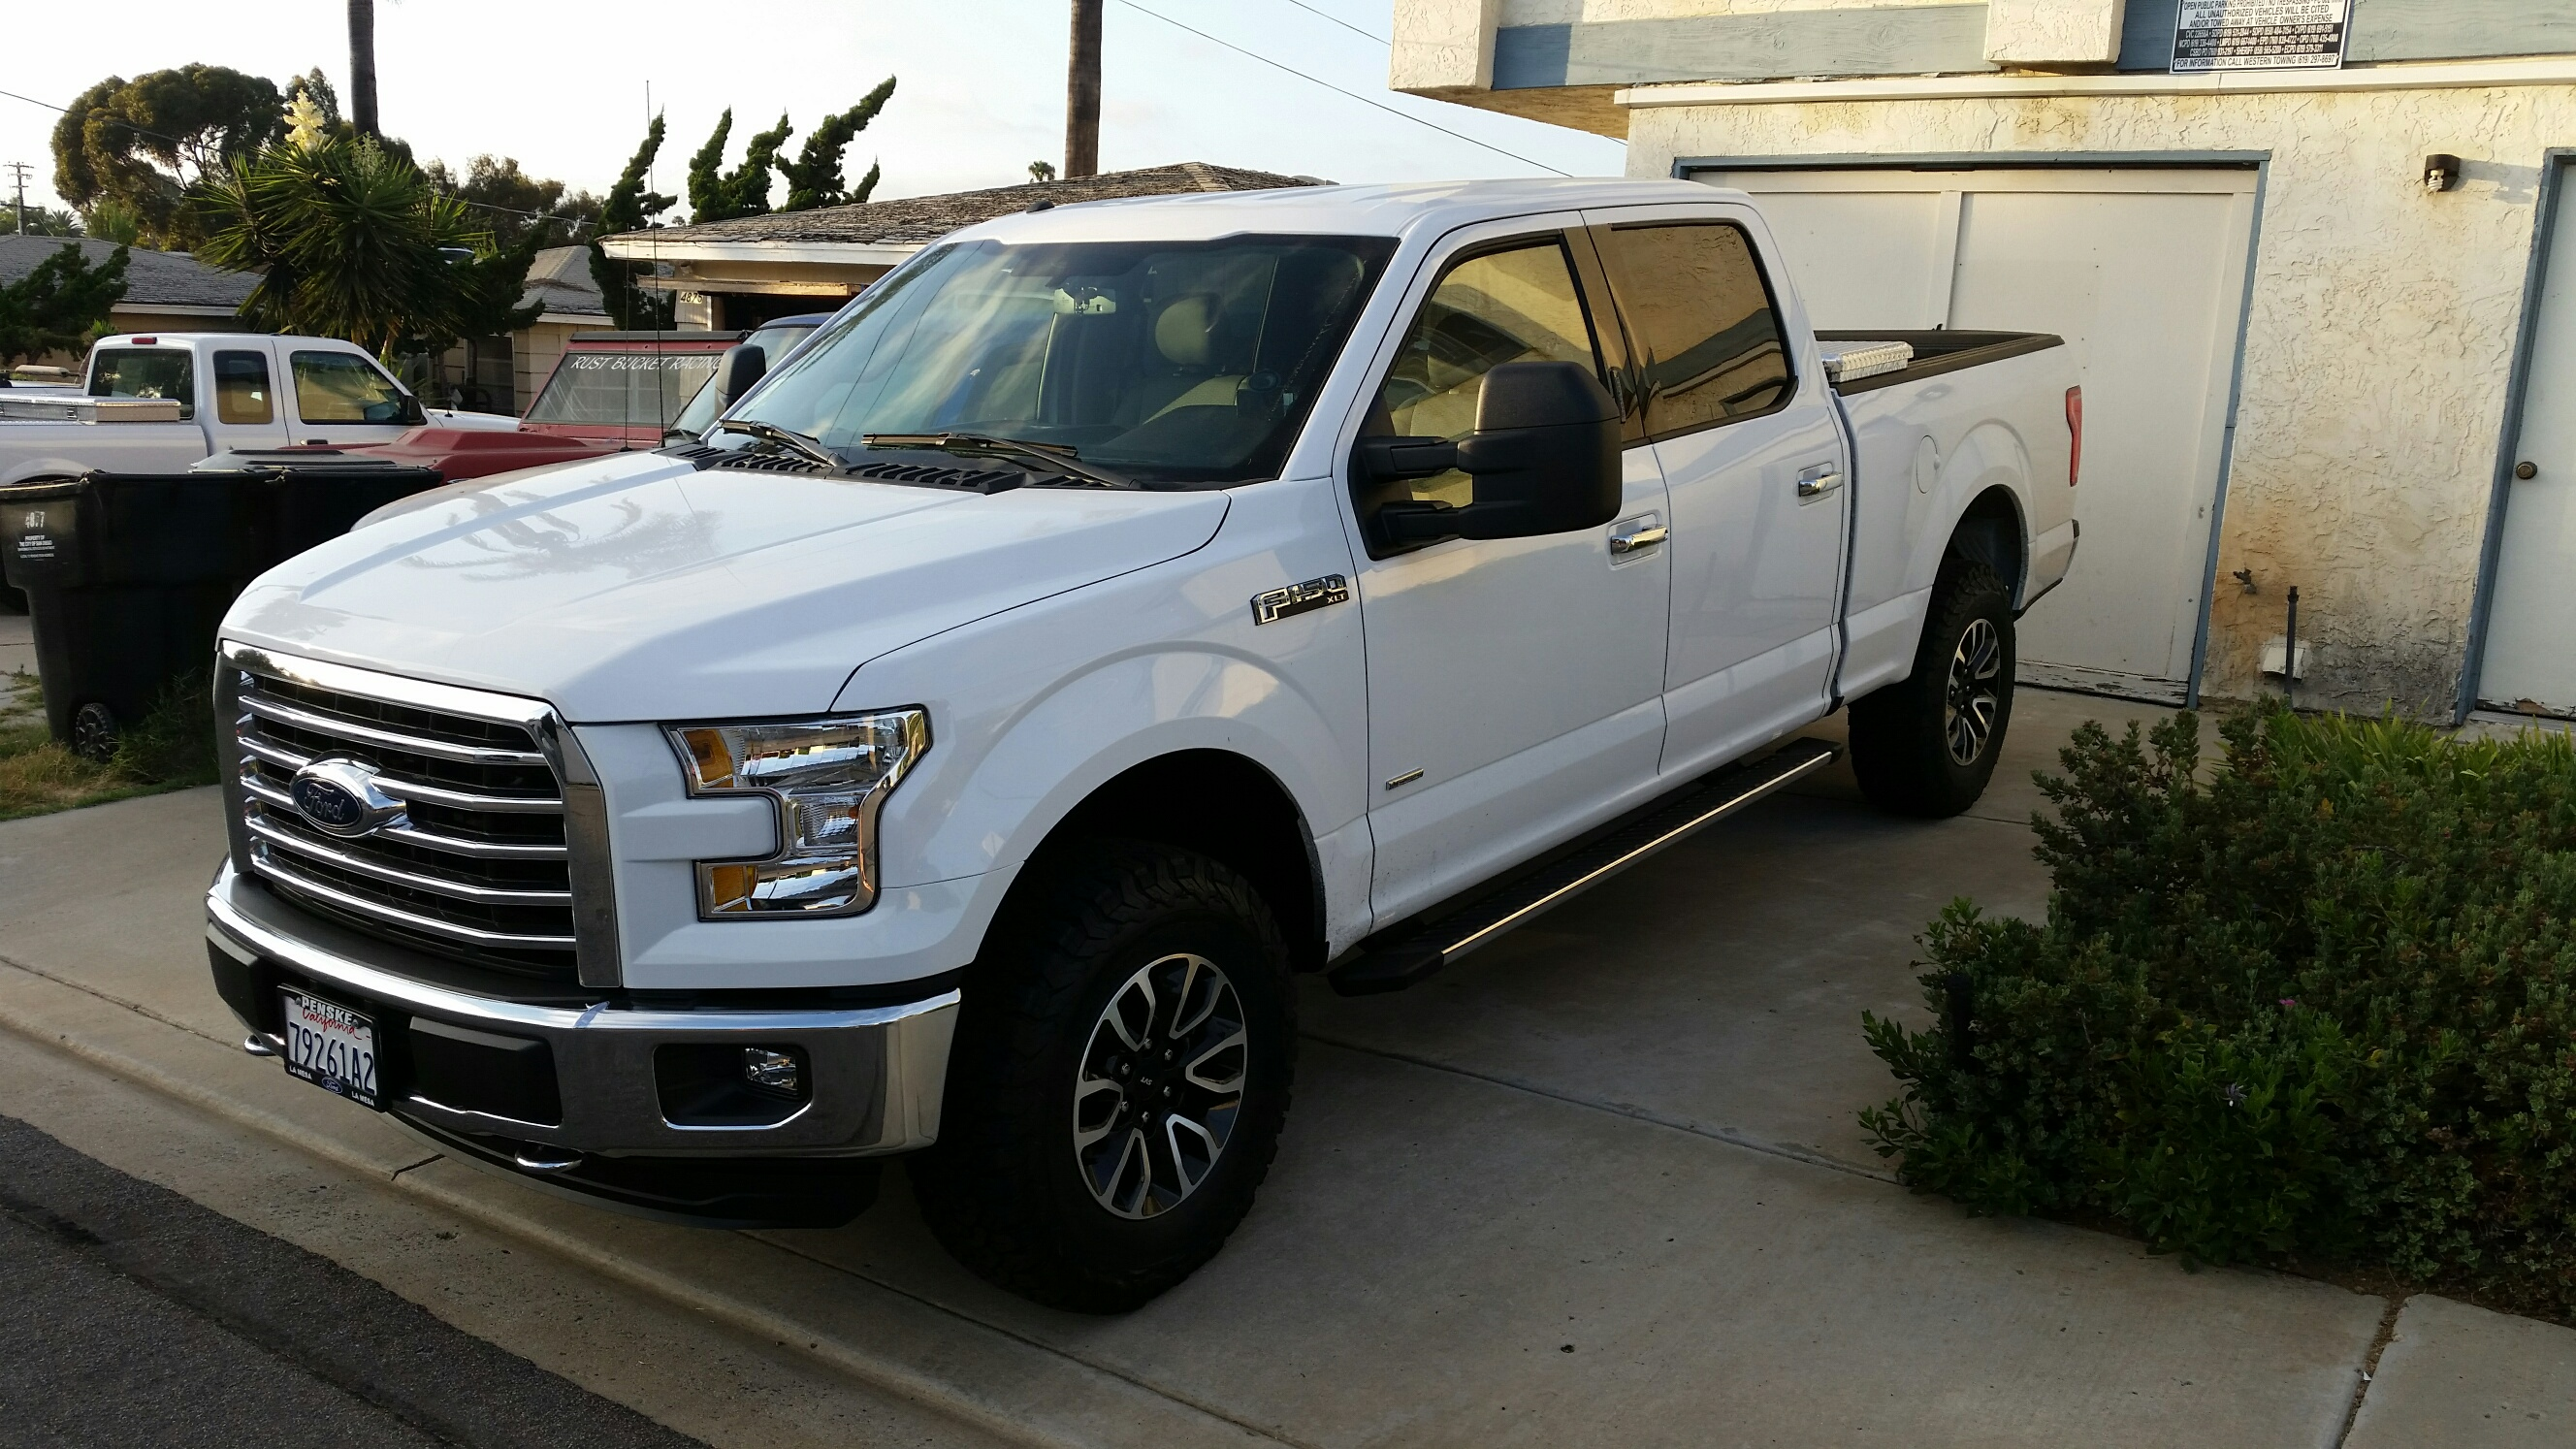 2016 2.7 with raptor wheels